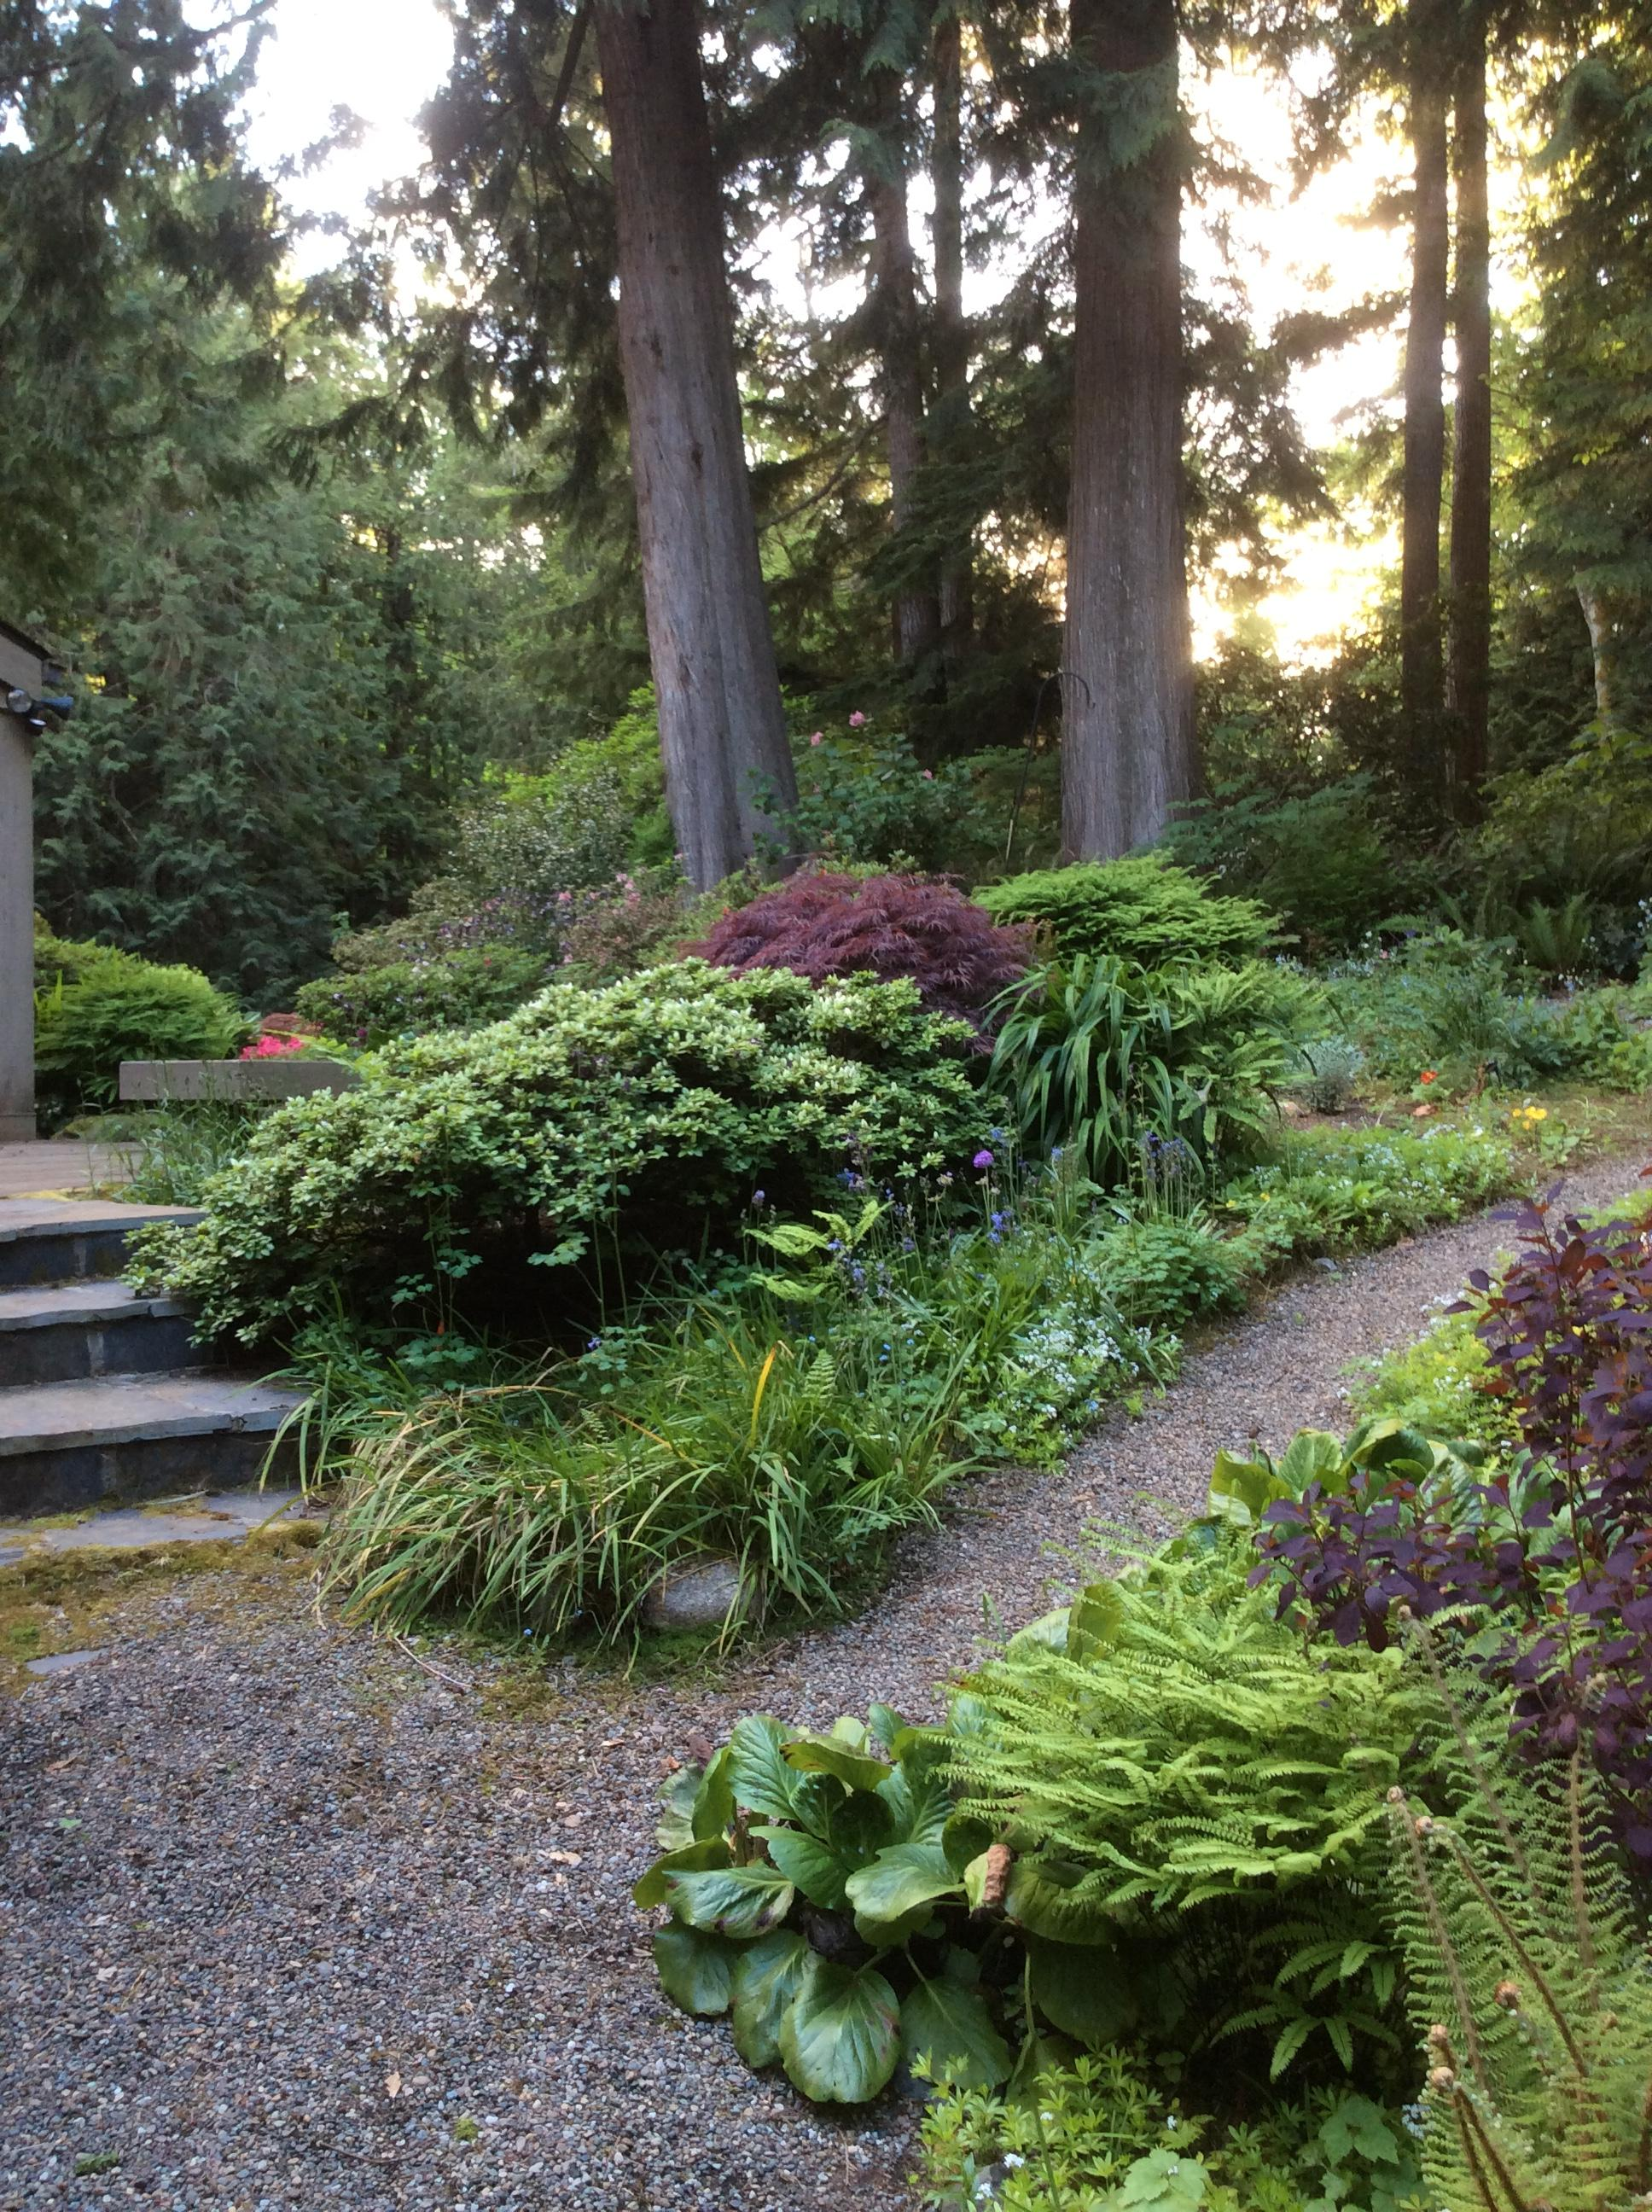 On Saturday, June 22, you are cordially invited to five private gardens in Bainbridge Island, through the Garden Conservancy Open Days program, 10 a.m. to 4 p.m. The Open Day is rain or shine, and no reservations are required. Admission is $10 per garden; children 12 and under are free. 16140 Agate Pass Road NE. Primarily landscaped by the original owners, the garden features a series of seven ponds which flow into each other, circling the house. Each subsequent owner has contributed unusual plants, hardscaping, and sculpture (in this case a totem to commemorate a wedding). Visitors to the garden comment on its quiet serenity and variety of views; particularly lovely is the view over the meadow lawn to the largest pond (Image courtesy of Stephanie Werskey).